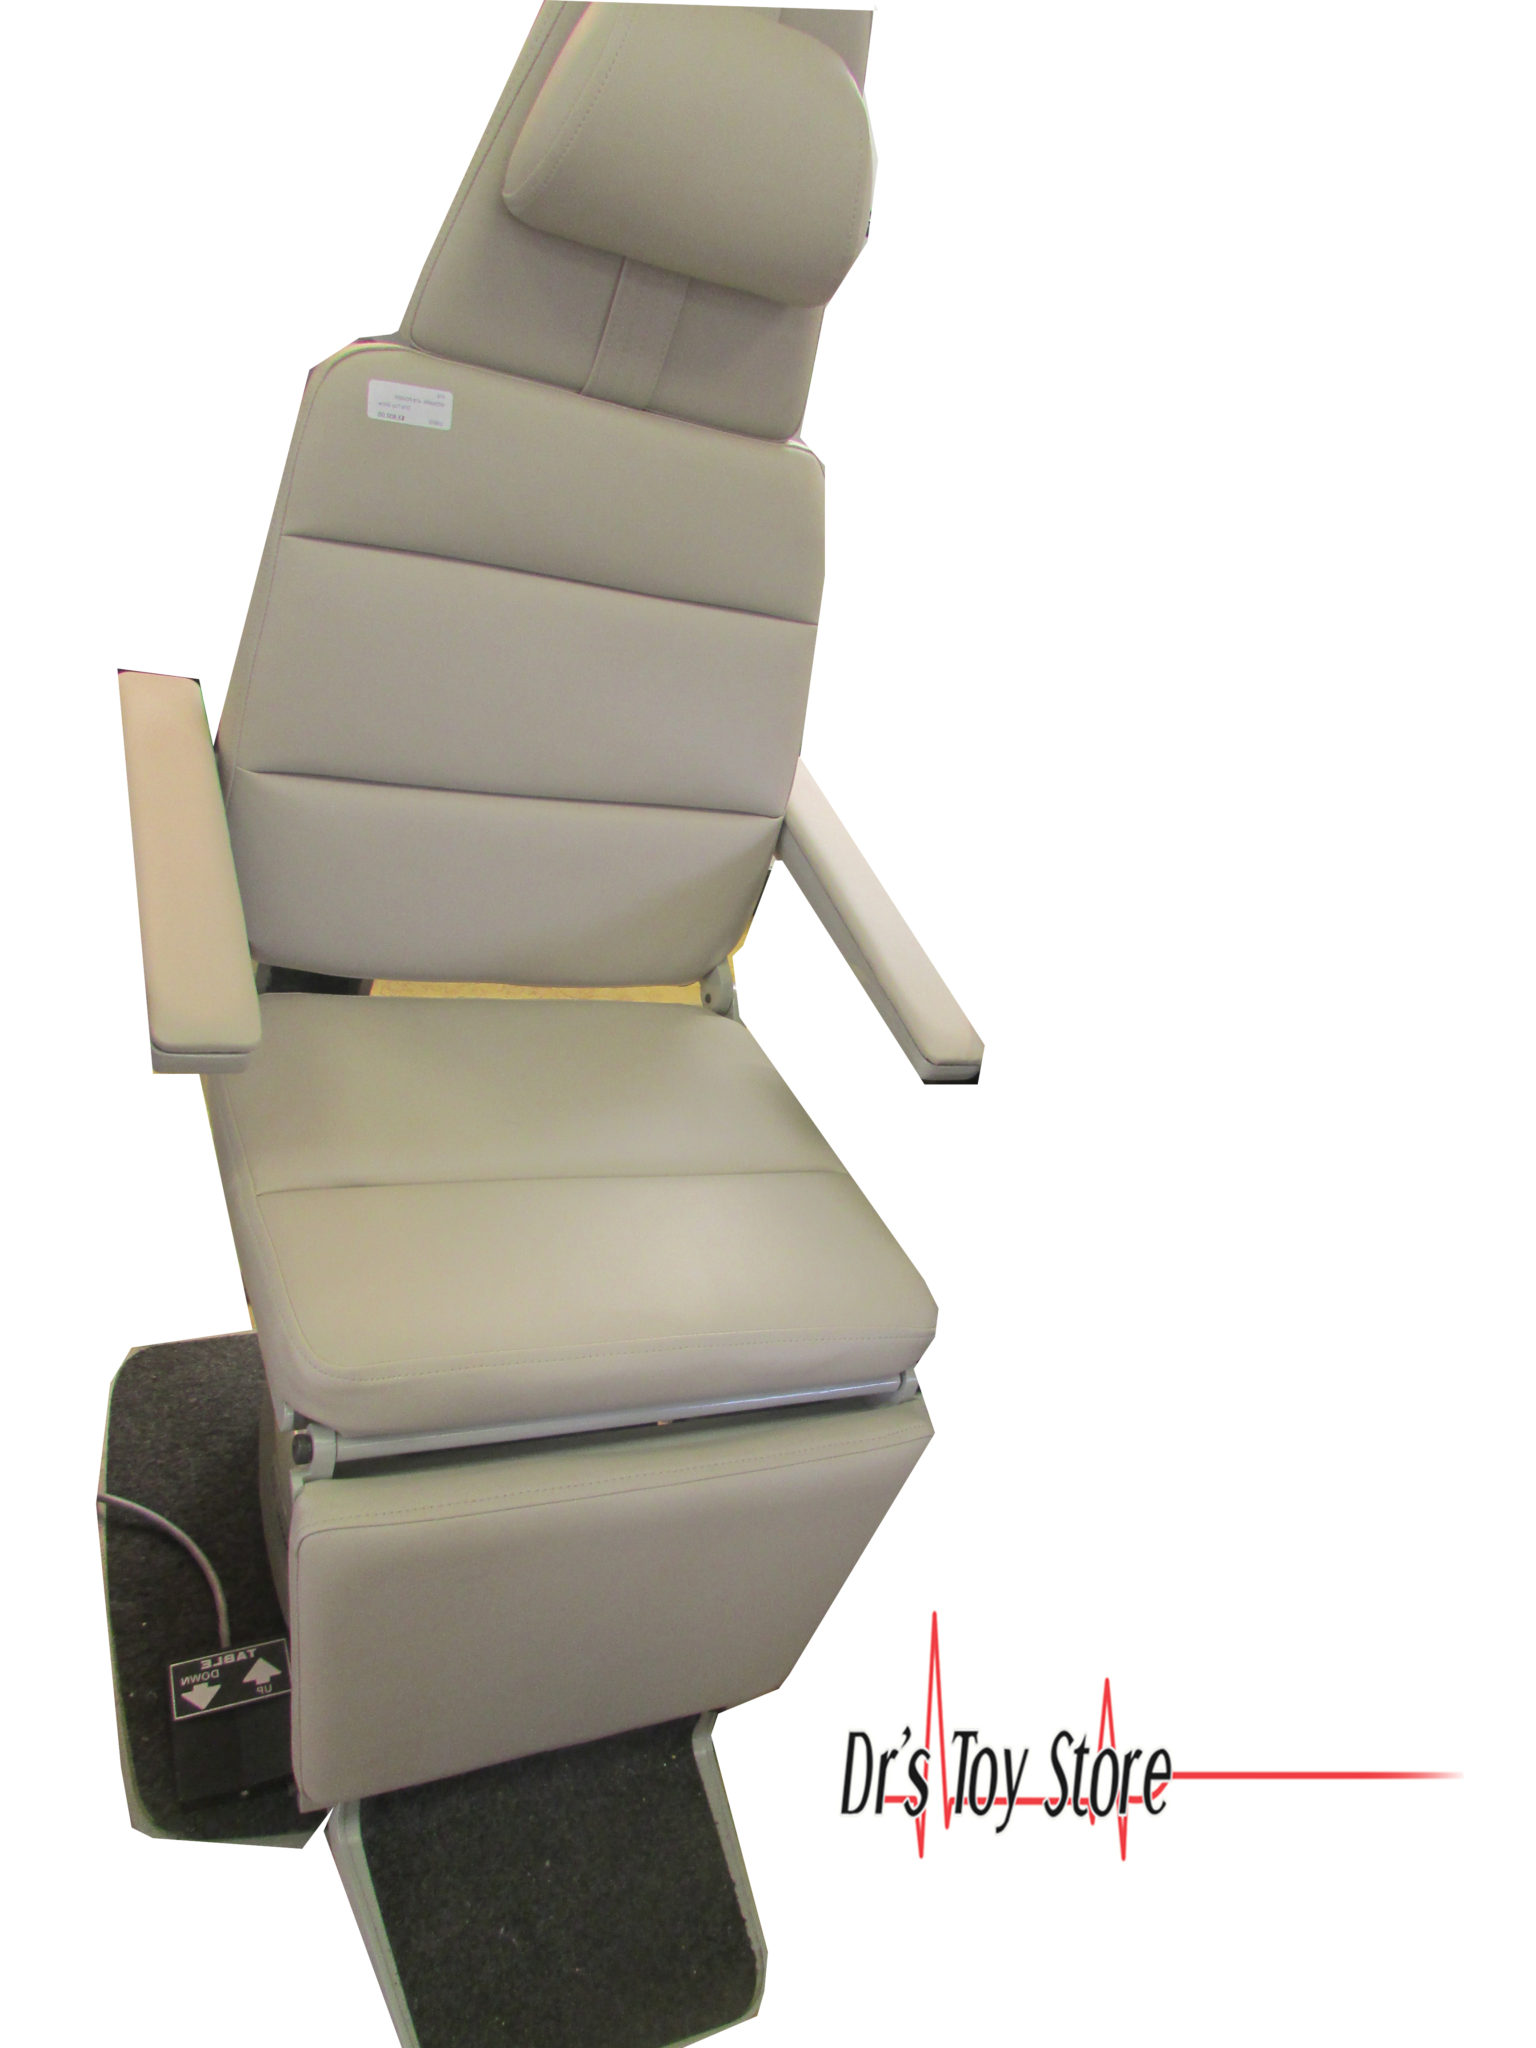 Midmark 418 Exam Chair New And Used Medical Equipment And Repairs